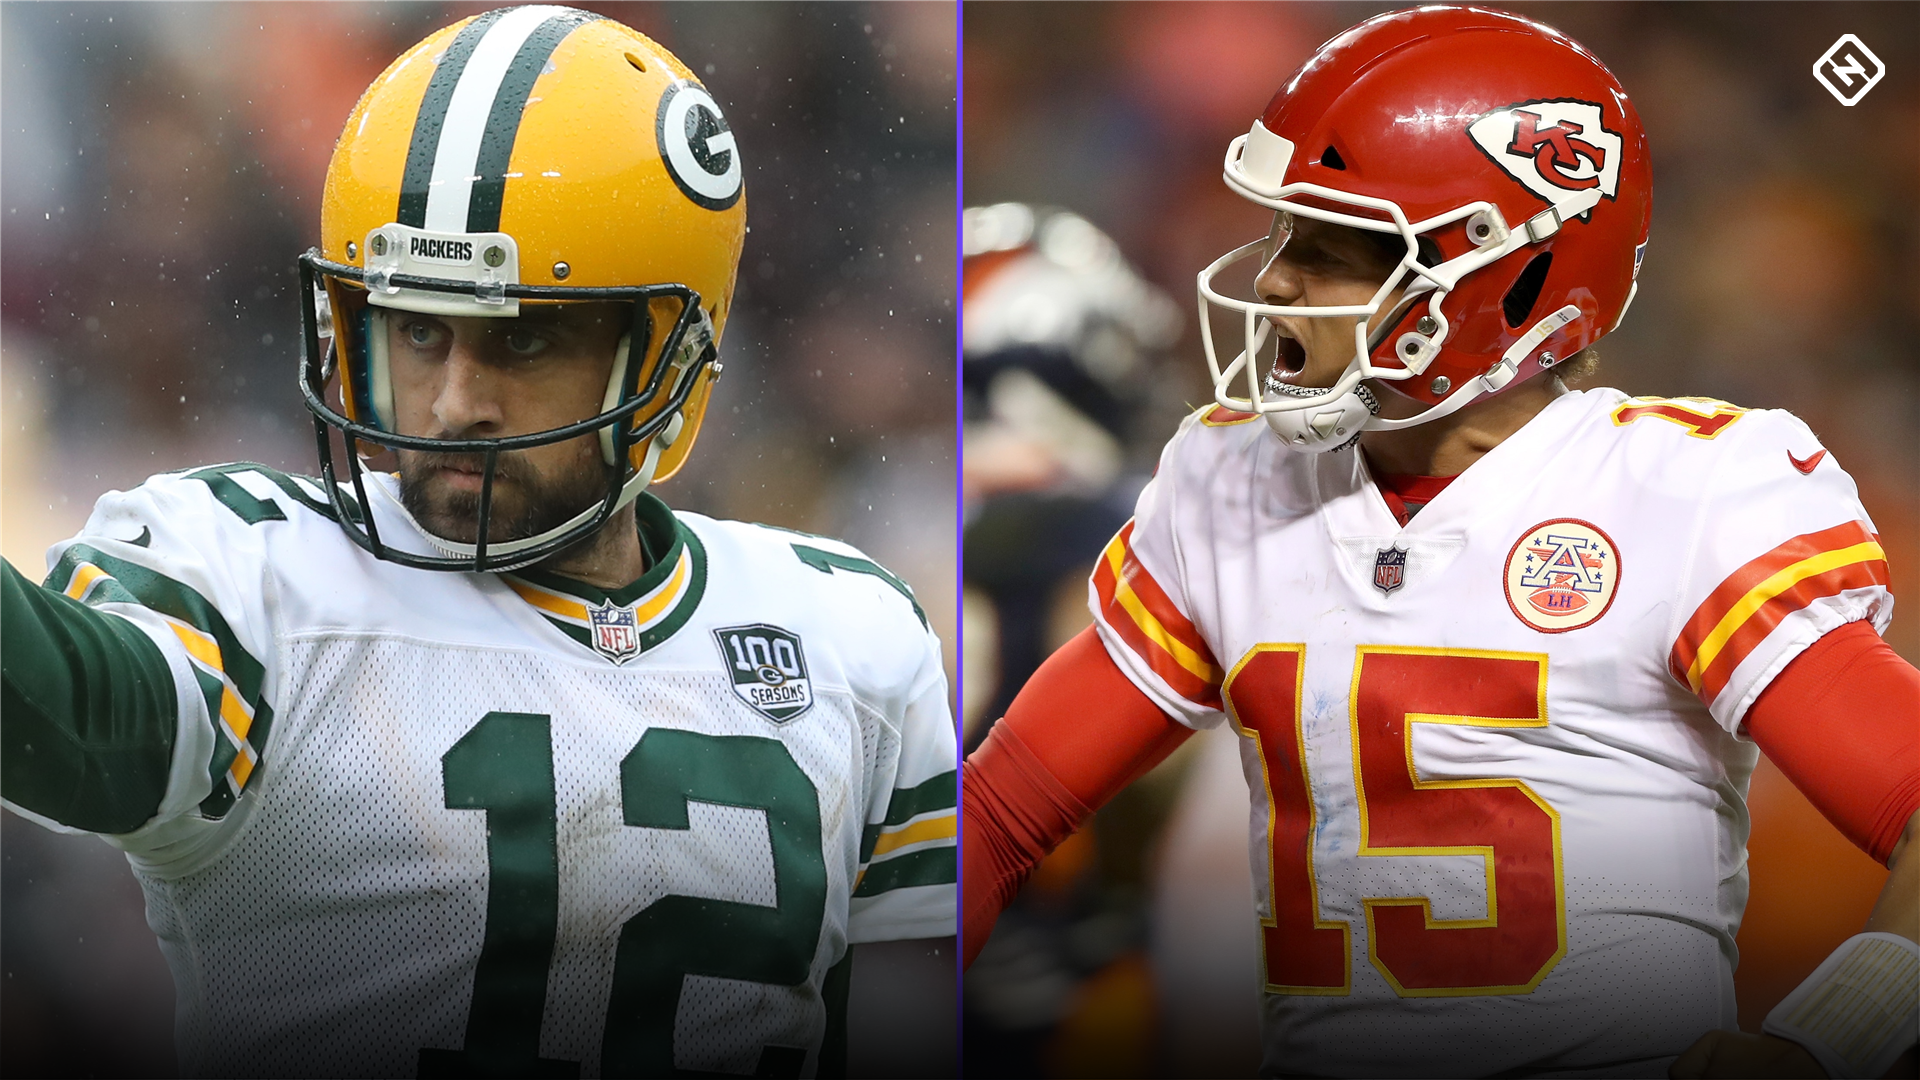 NFL Pro Bowl rosters 2021: Full list of selections, voting results, snubs & alternates for AFC, NFC teams - sporting news